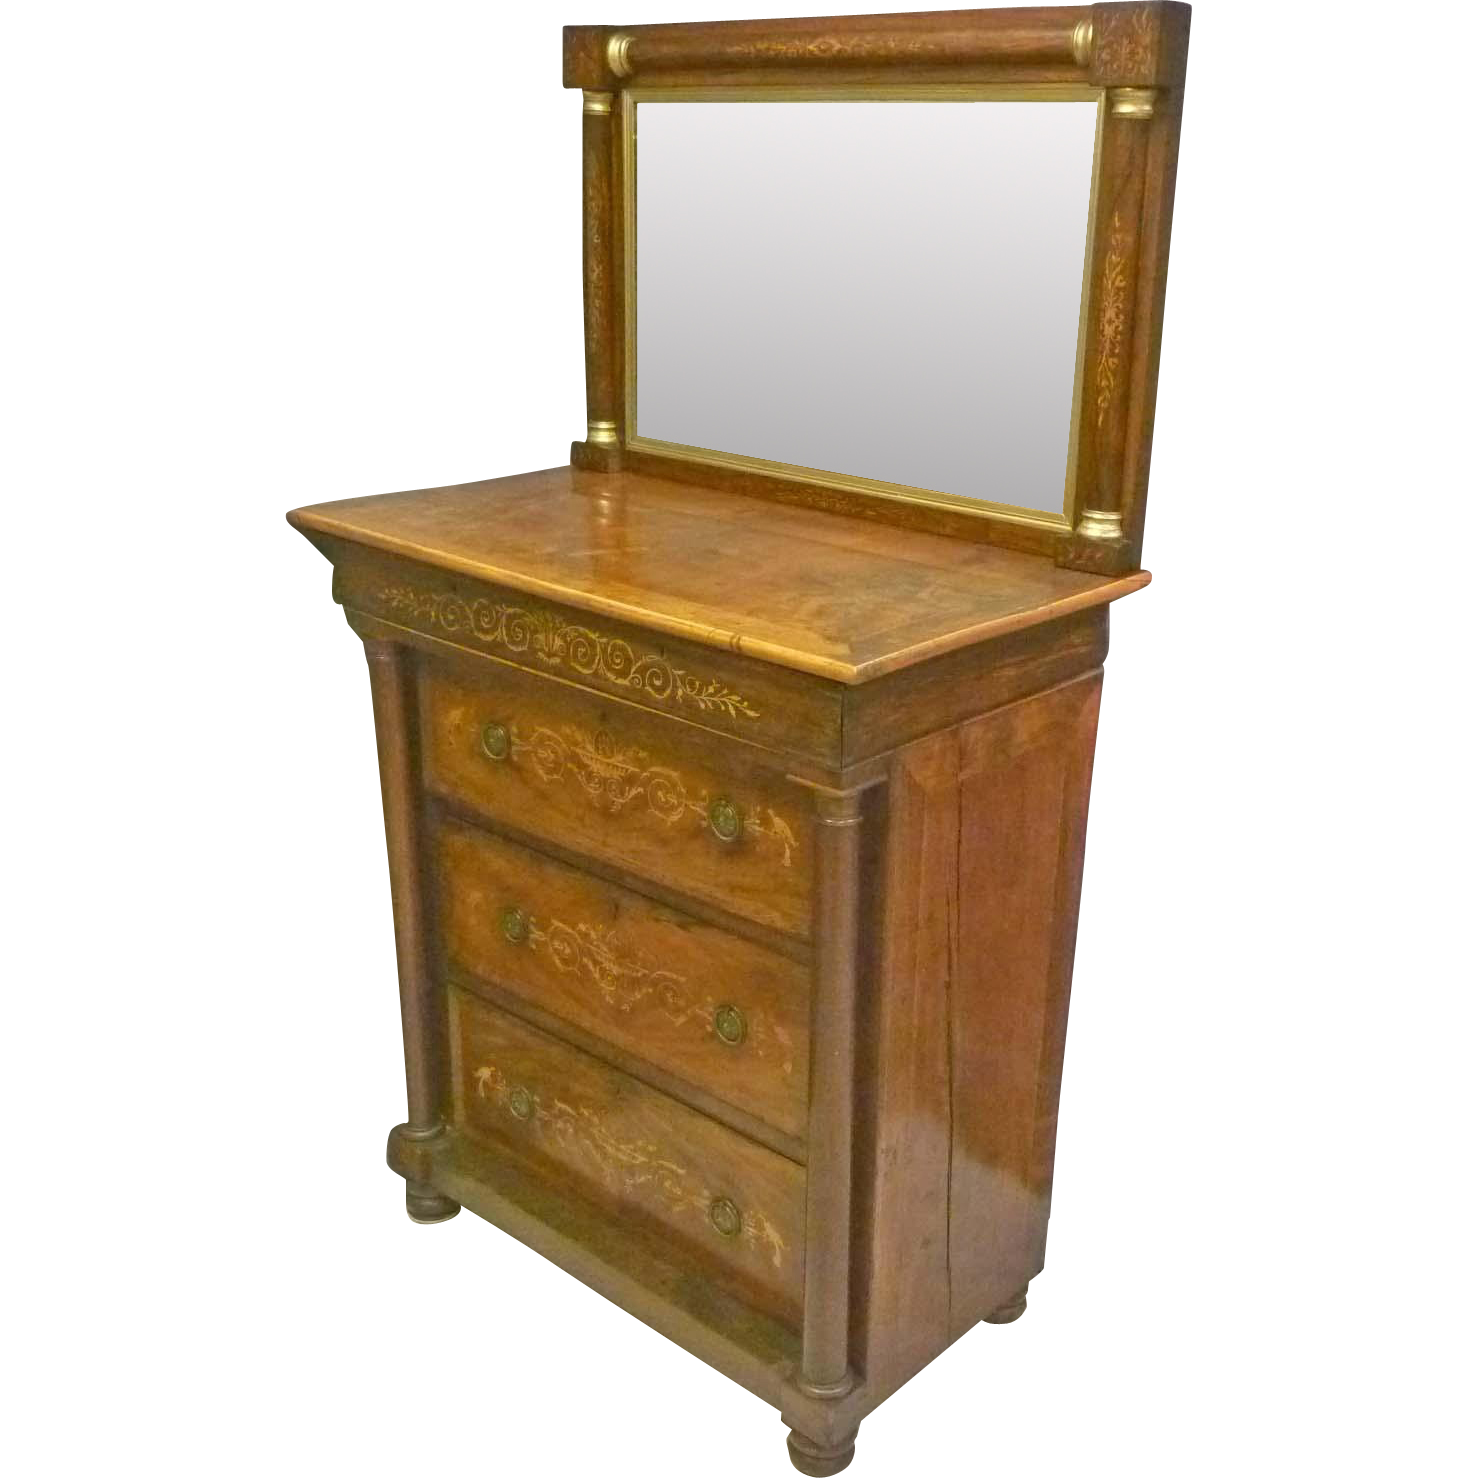 Inlaid Mahogany Chest of Drawers with Mirror